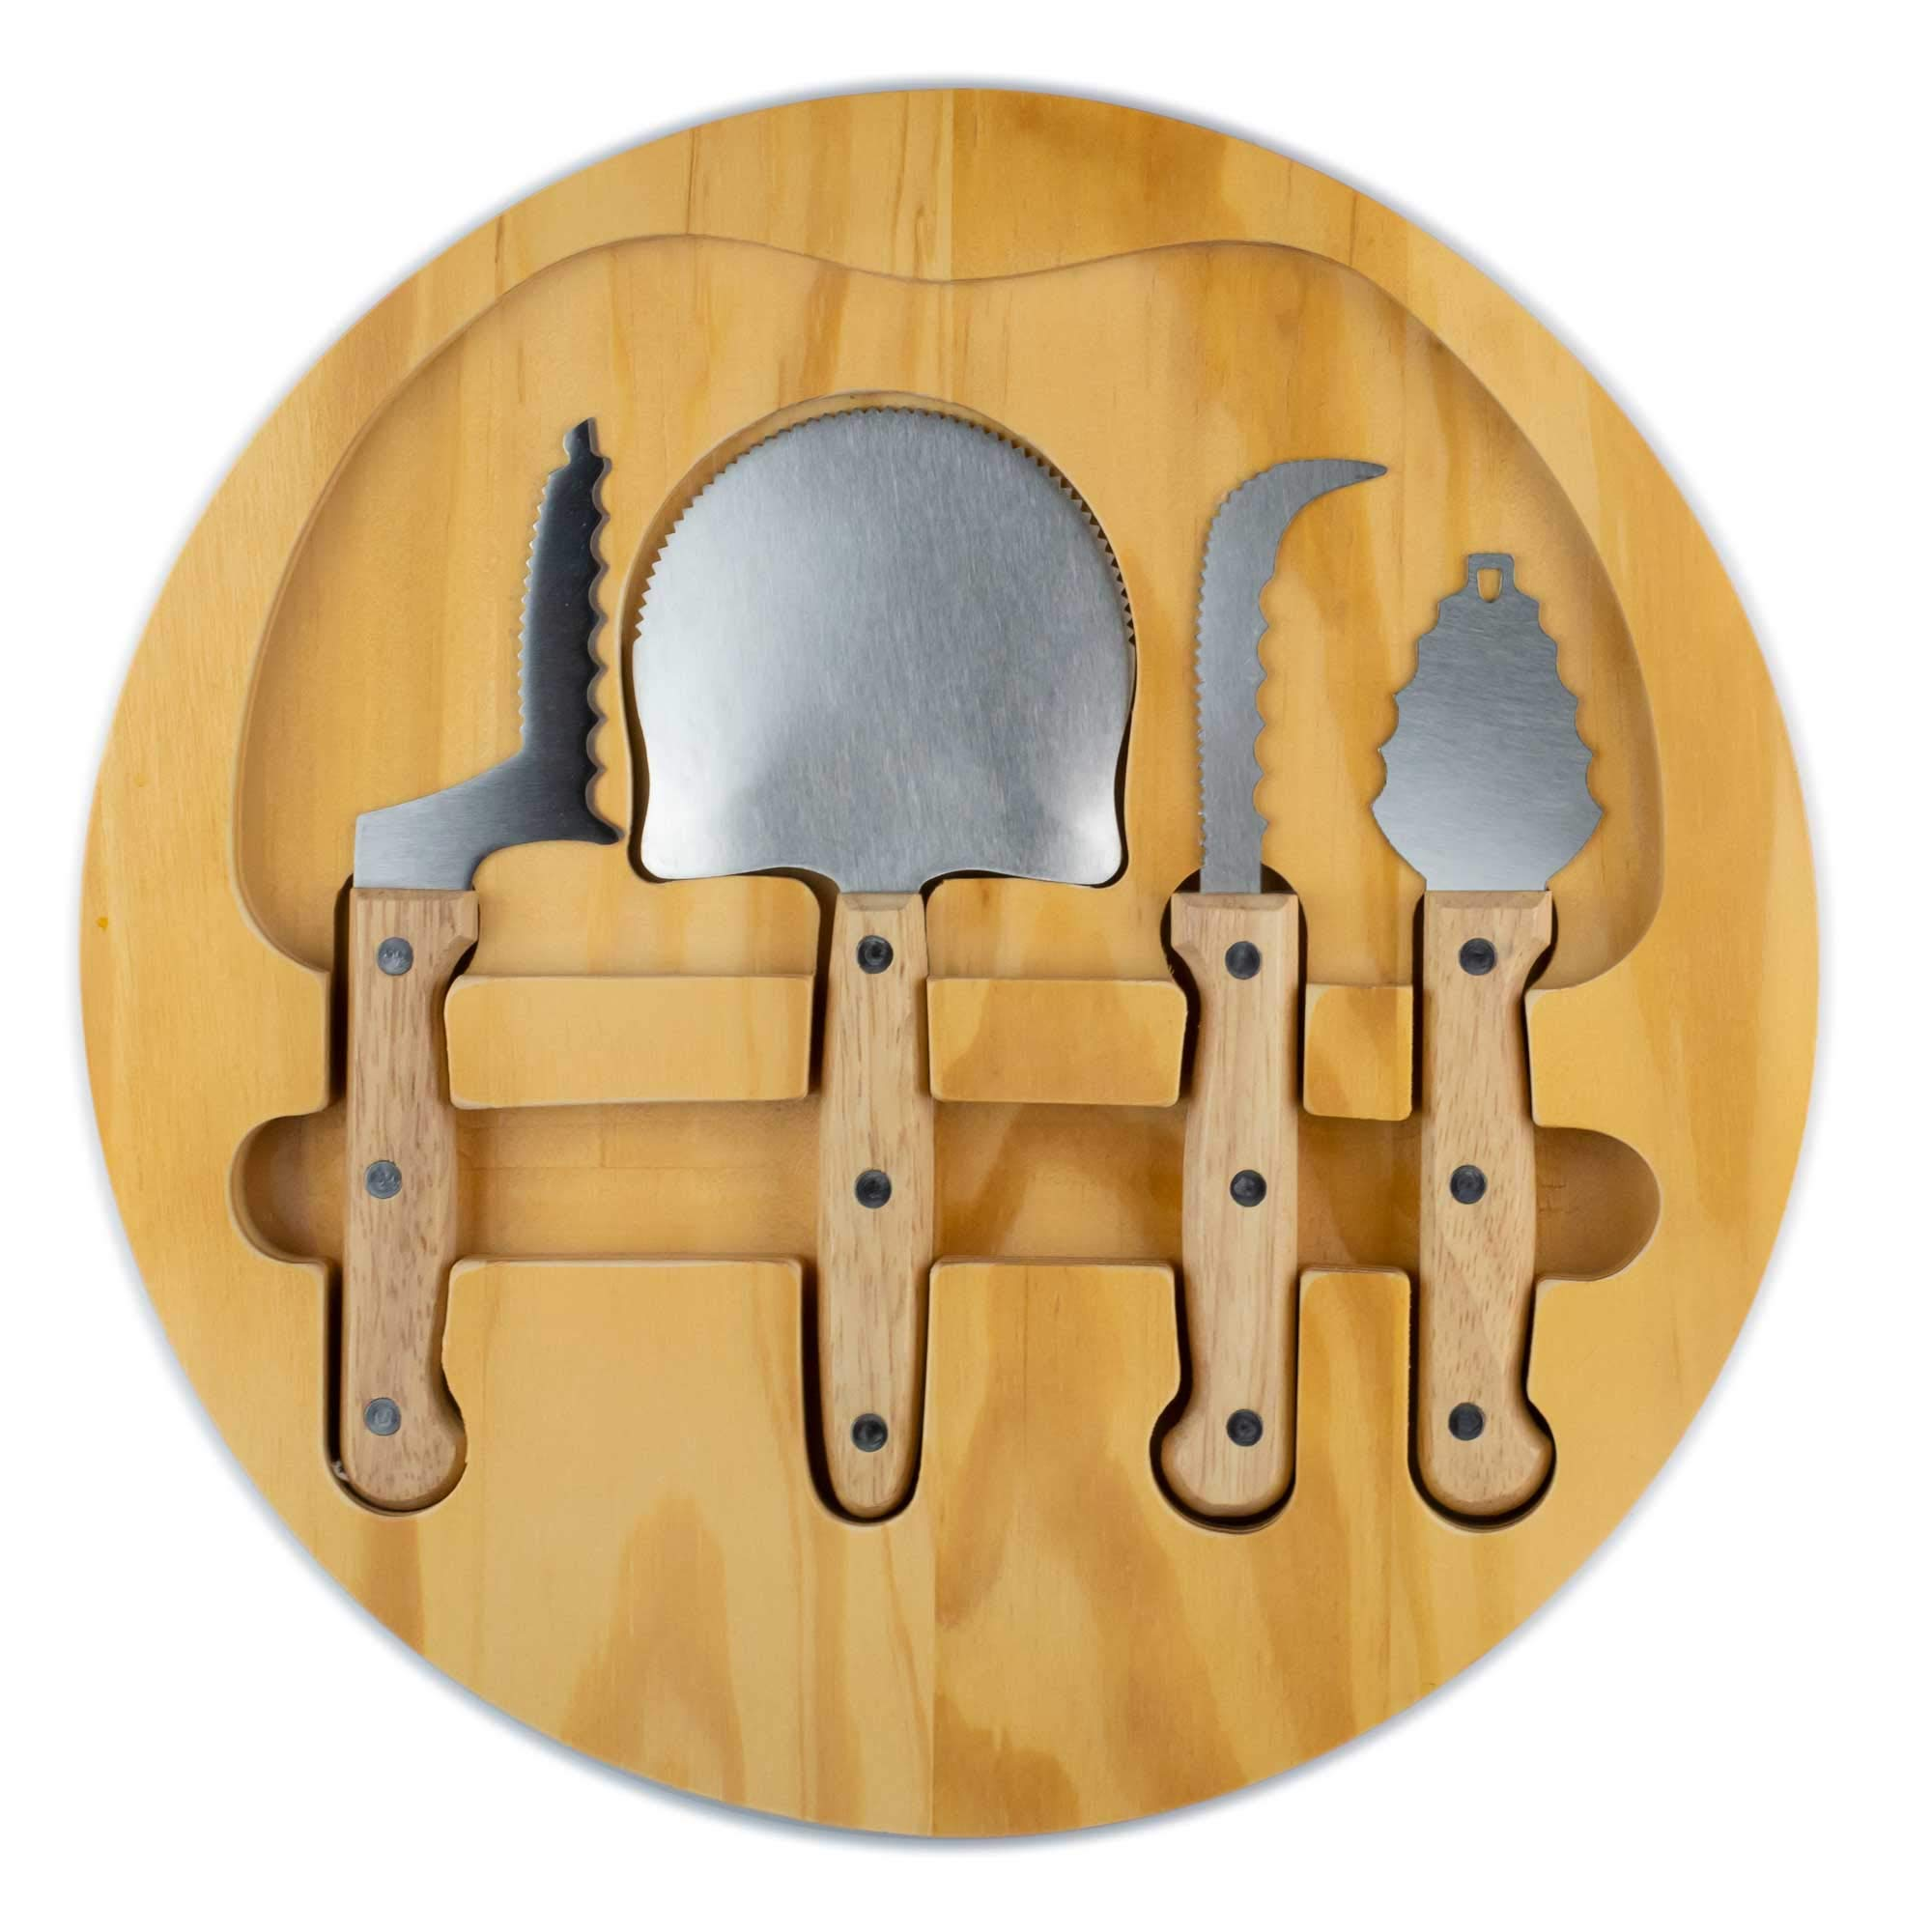 NEW 4 Piece Pumpkin Carving Kit with Wooden Case: (Plus Pumpkin Carving Stencil E-Book) Sturdy Stainless Steel and Wood Handled Carving Tools | Crafted for Safety and Efficiency for Halloween Memories by Creative Carving